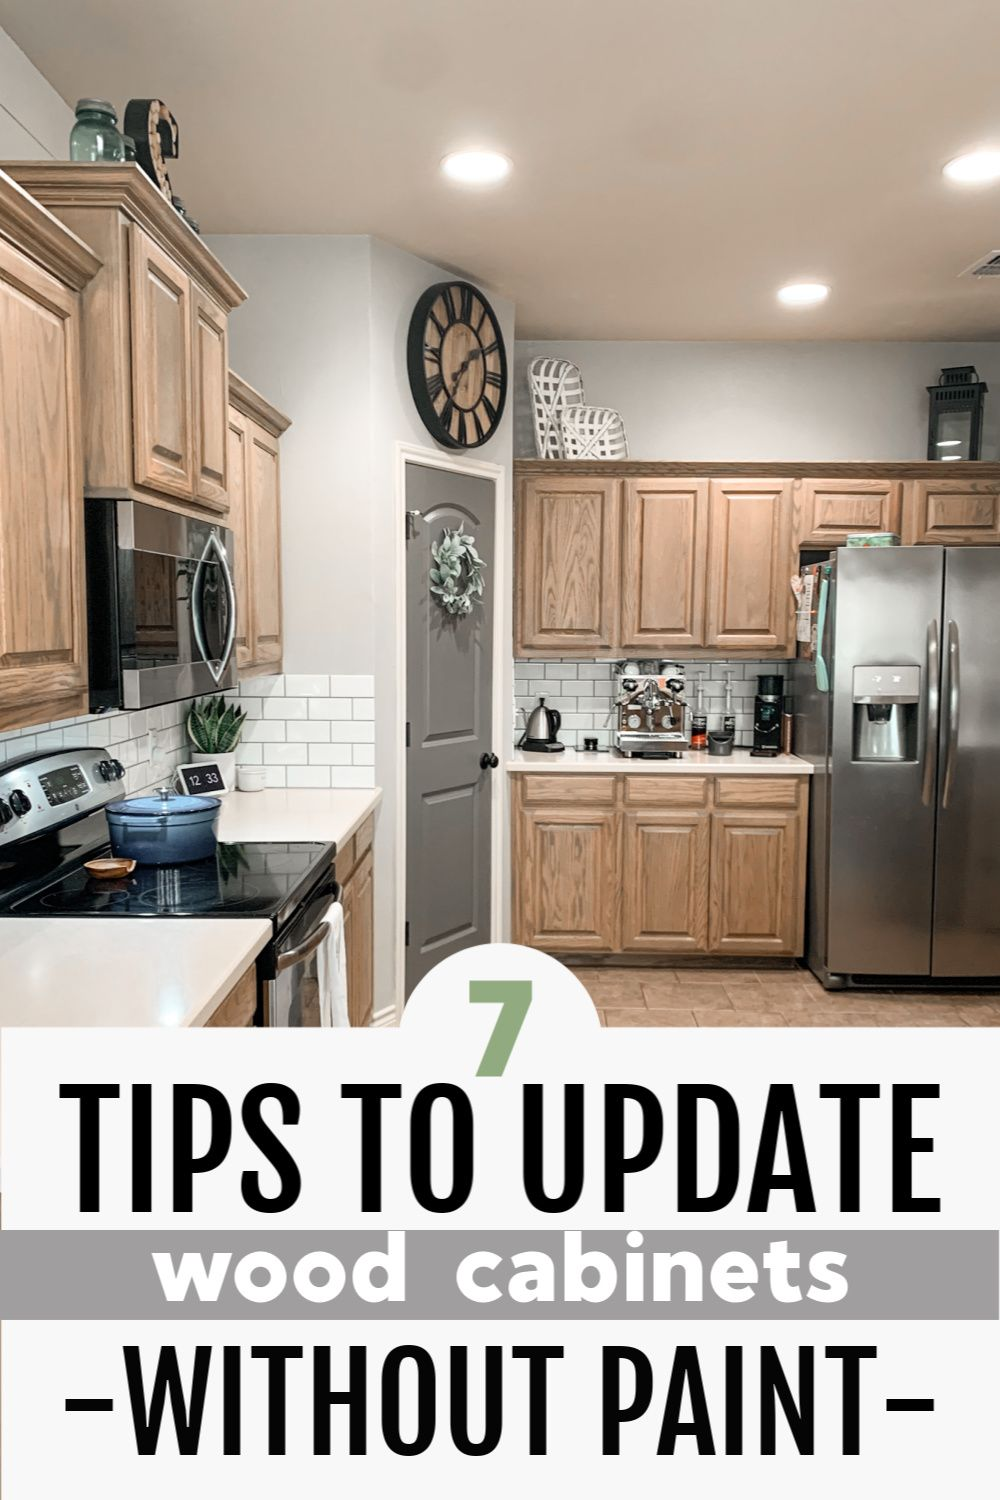 How To Update Wood Cabinets No Painting In 2020 Cheap Kitchen Makeover Budget Kitchen Makeover Diy Kitchen Cabinets Makeover